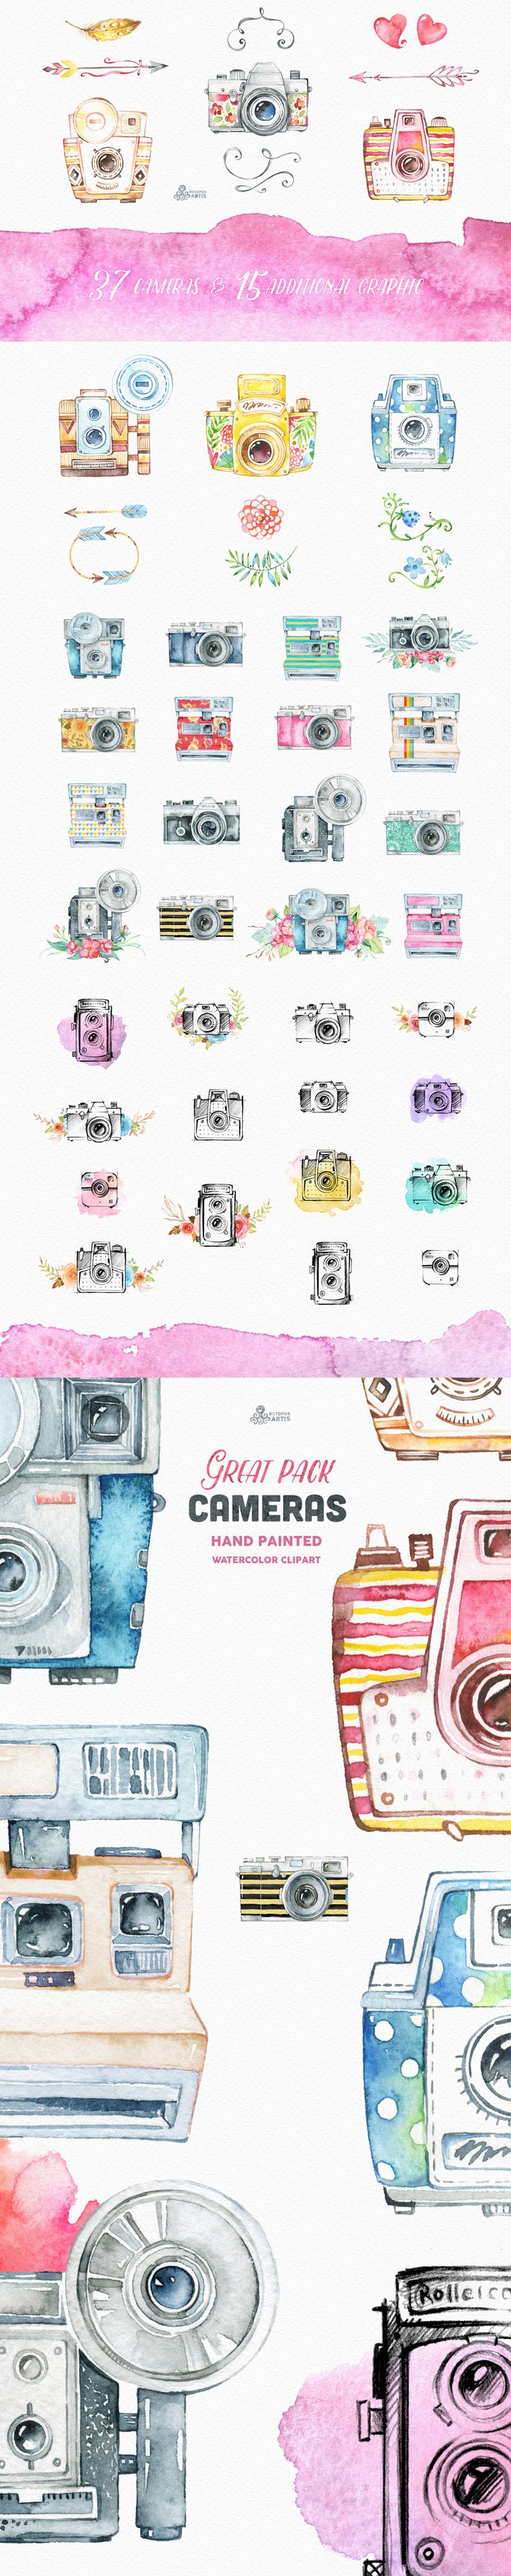 Cameras Clipart// This set of 52 high quality hand painted watercolor cameras and additional elements (floral, arrows, feathers and more) in Hires. Perfect graphic for branding, invitations, greeting cards, photos, posters, inspirational quotes and more.